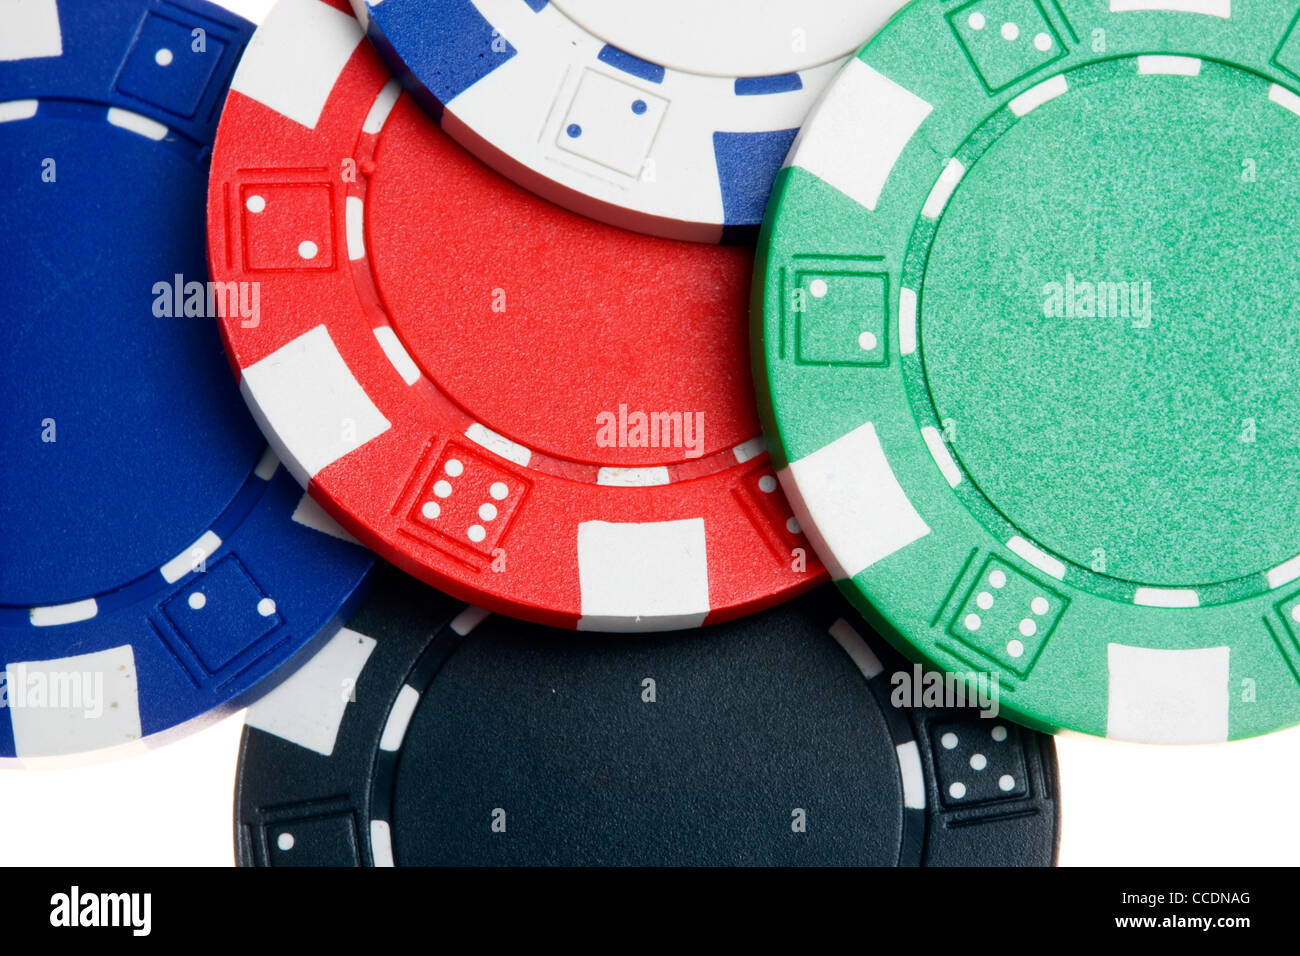 Poker game, different valued tokens, gaming chips. - Stock Image